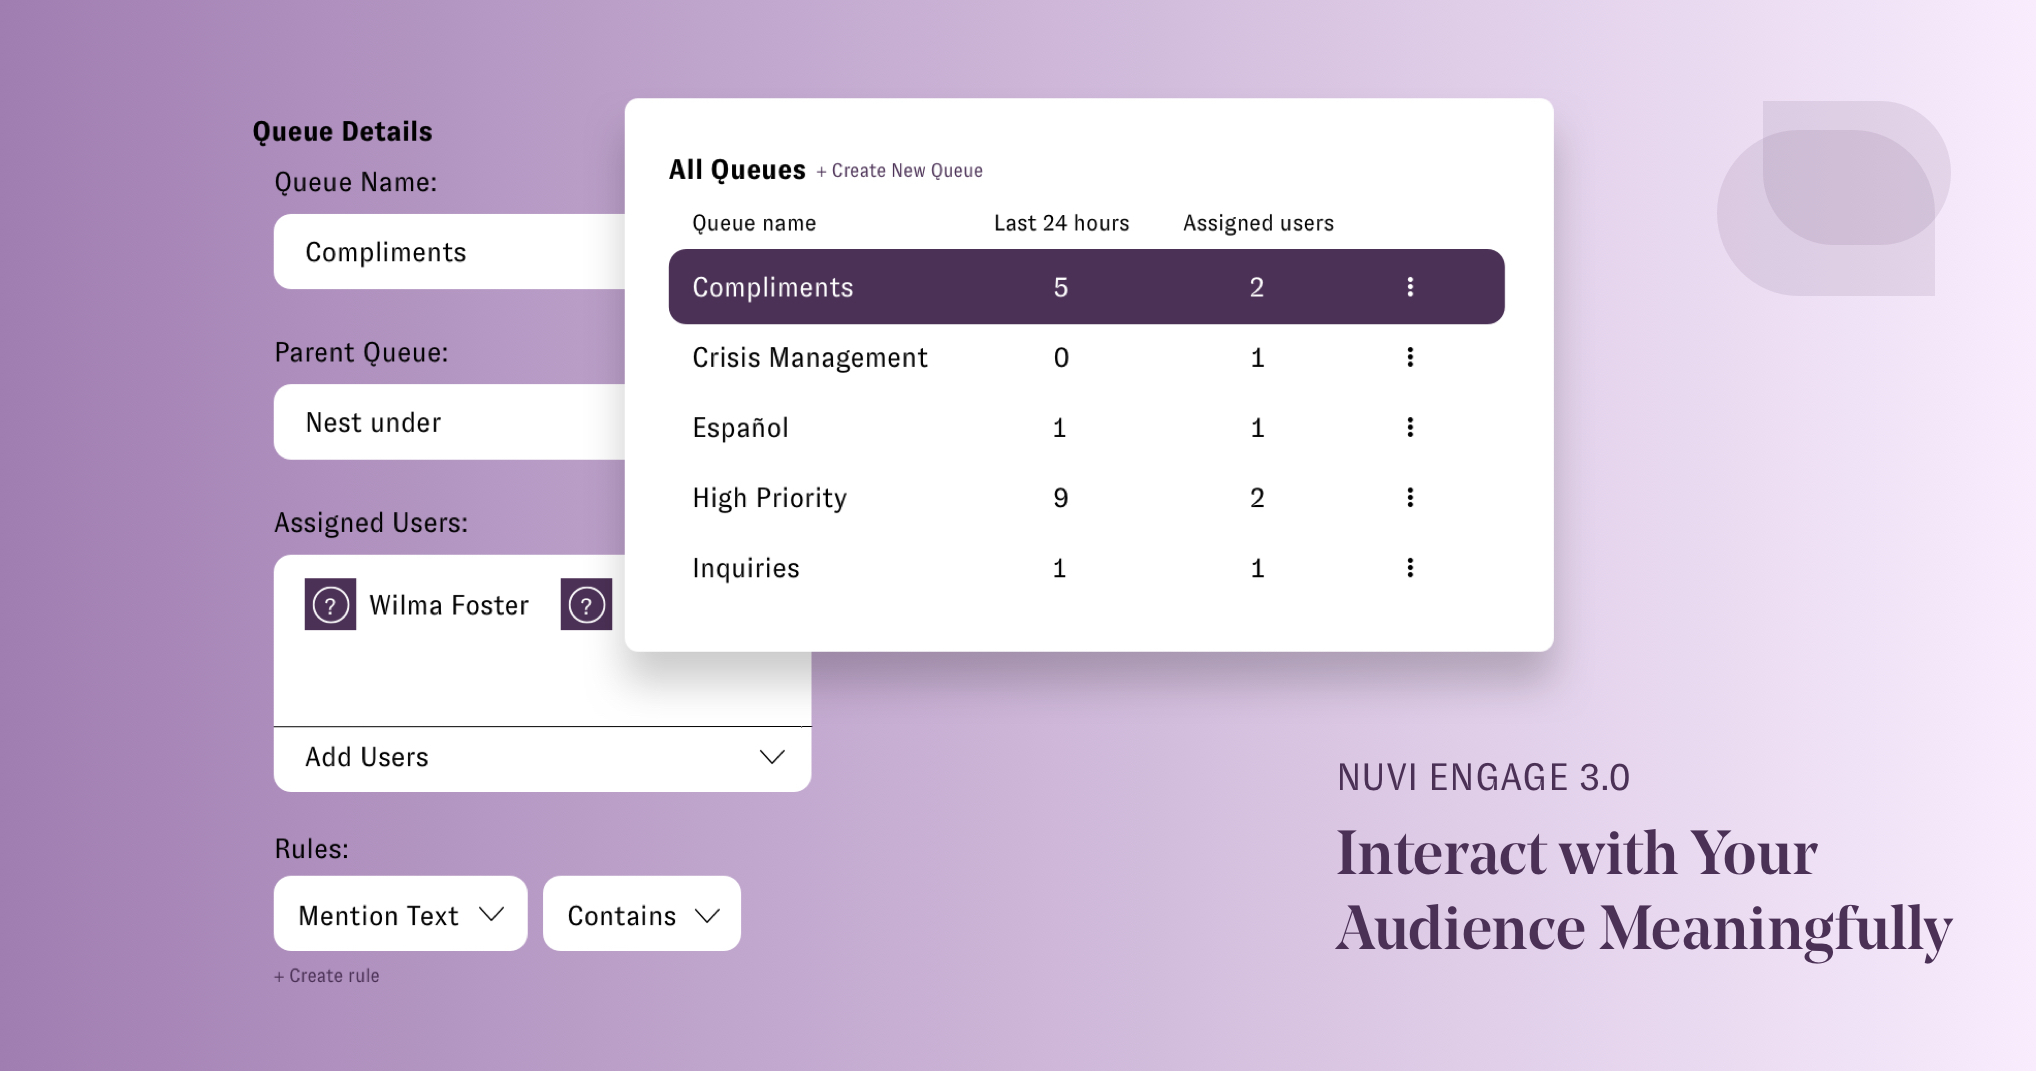 Nuvi Engage 3.0 is built to enhance customer engagement and customer experience. This image shows the total number of customer engagements and then the number of customer engagement in each queue, which in this case are: compliments, crisis management, Espanol, High Priority, and Inquiries. To the right of the box showing all the customer engagement numbers by queue are the top most recent messages within a selected queue. These messages are stacked on top of each other. Hovering over them is the response box for customer service or customer success managers to respond in. To the right of these depictions of the Nuvi Engage software is the message Nuvi Engage: Interact with your Audience Meaningfully